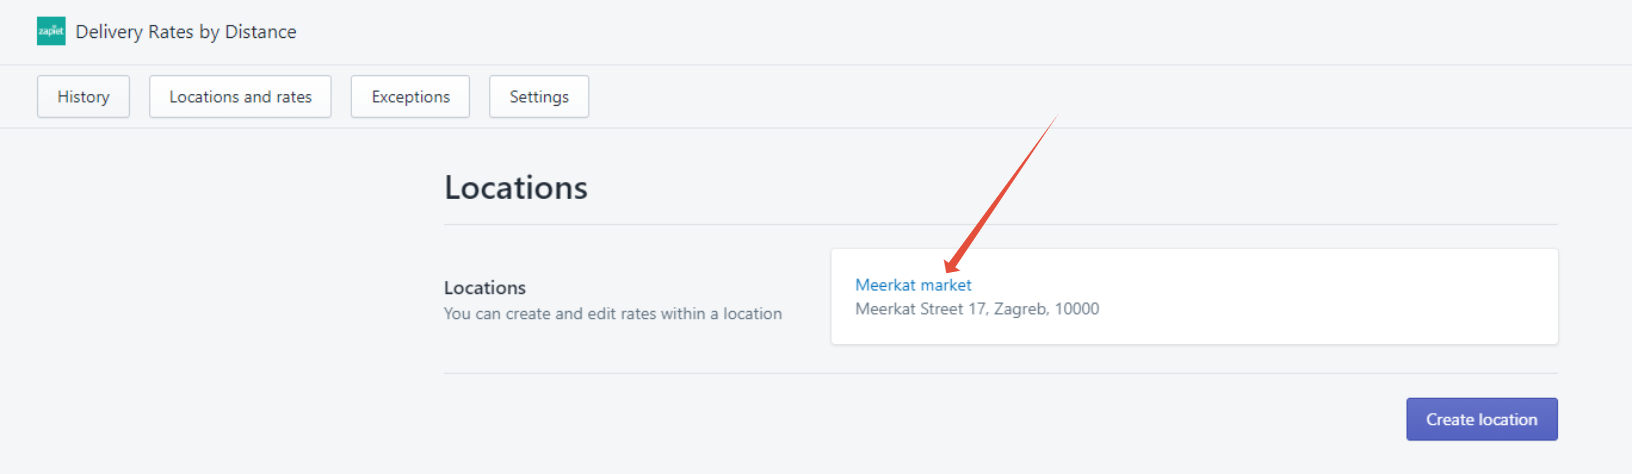 Click the location you want to create rates for